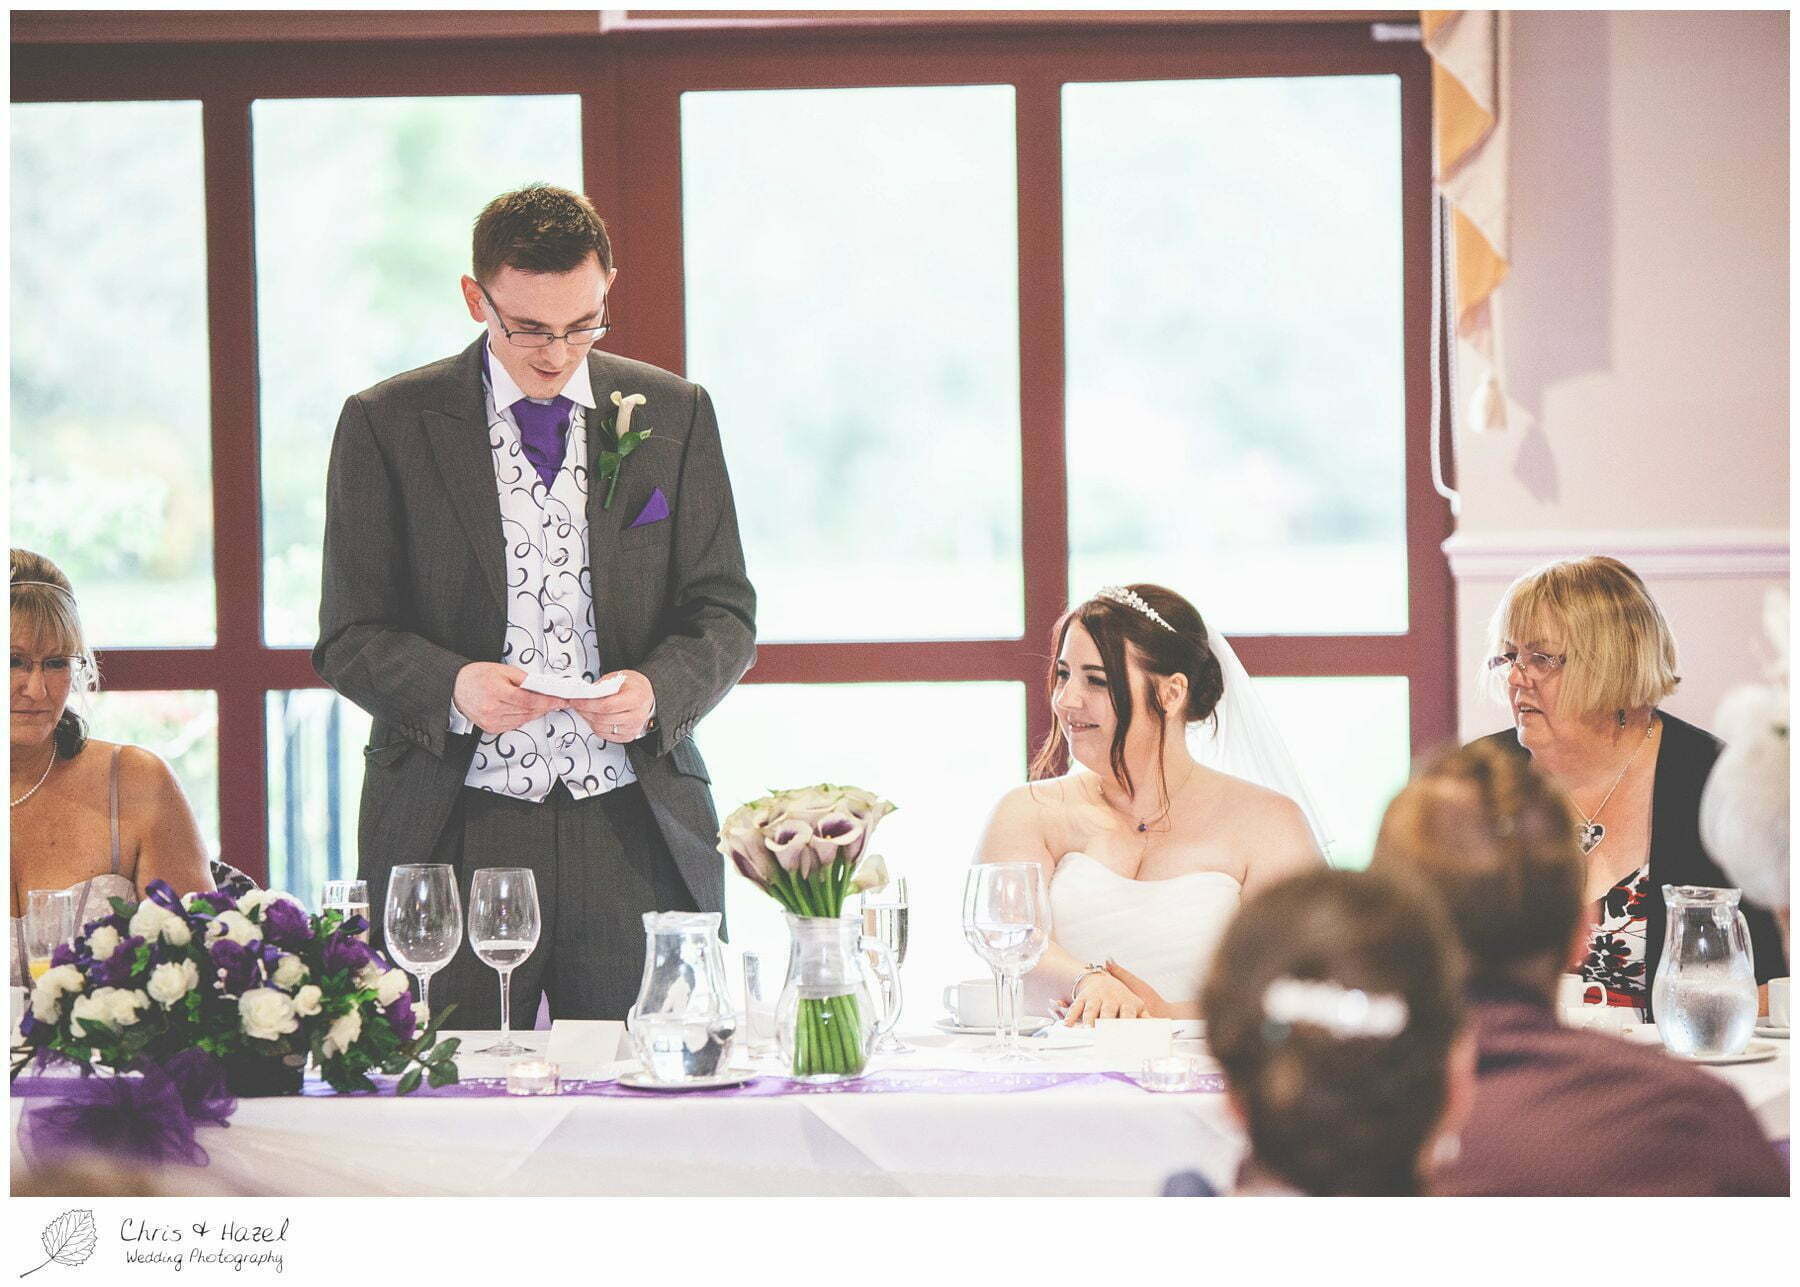 groom wedding speech, bagden hall wedding venue, documentary wedding photography, denny dale, huddersfield, Wedding Photographer, Bagden Hall, Wedding Photography, Chris and Hazel Wedding Photography, Alex tomenson, Vicky hunt